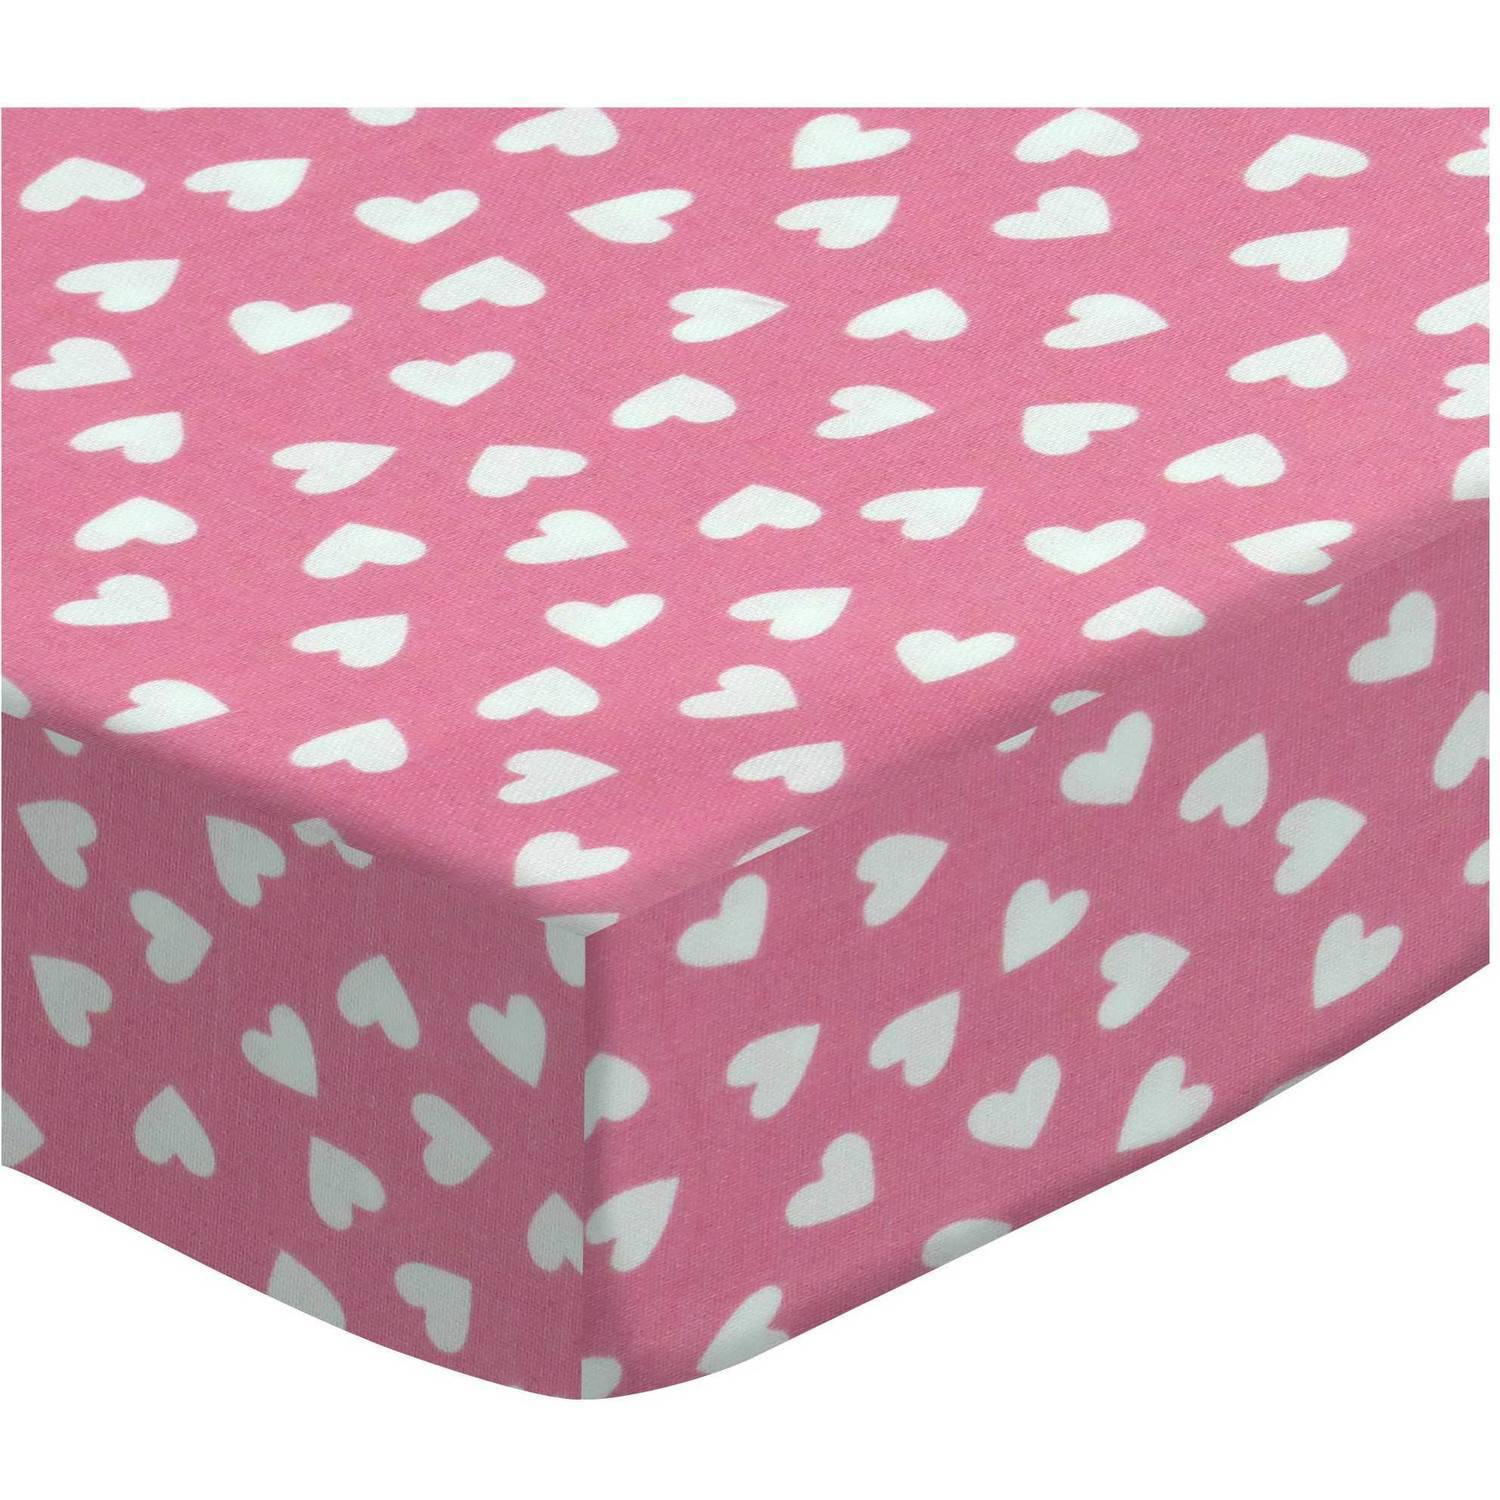 SheetWorld Fitted Oval (Stokke Mini) - Primary Hearts White On Pink Woven